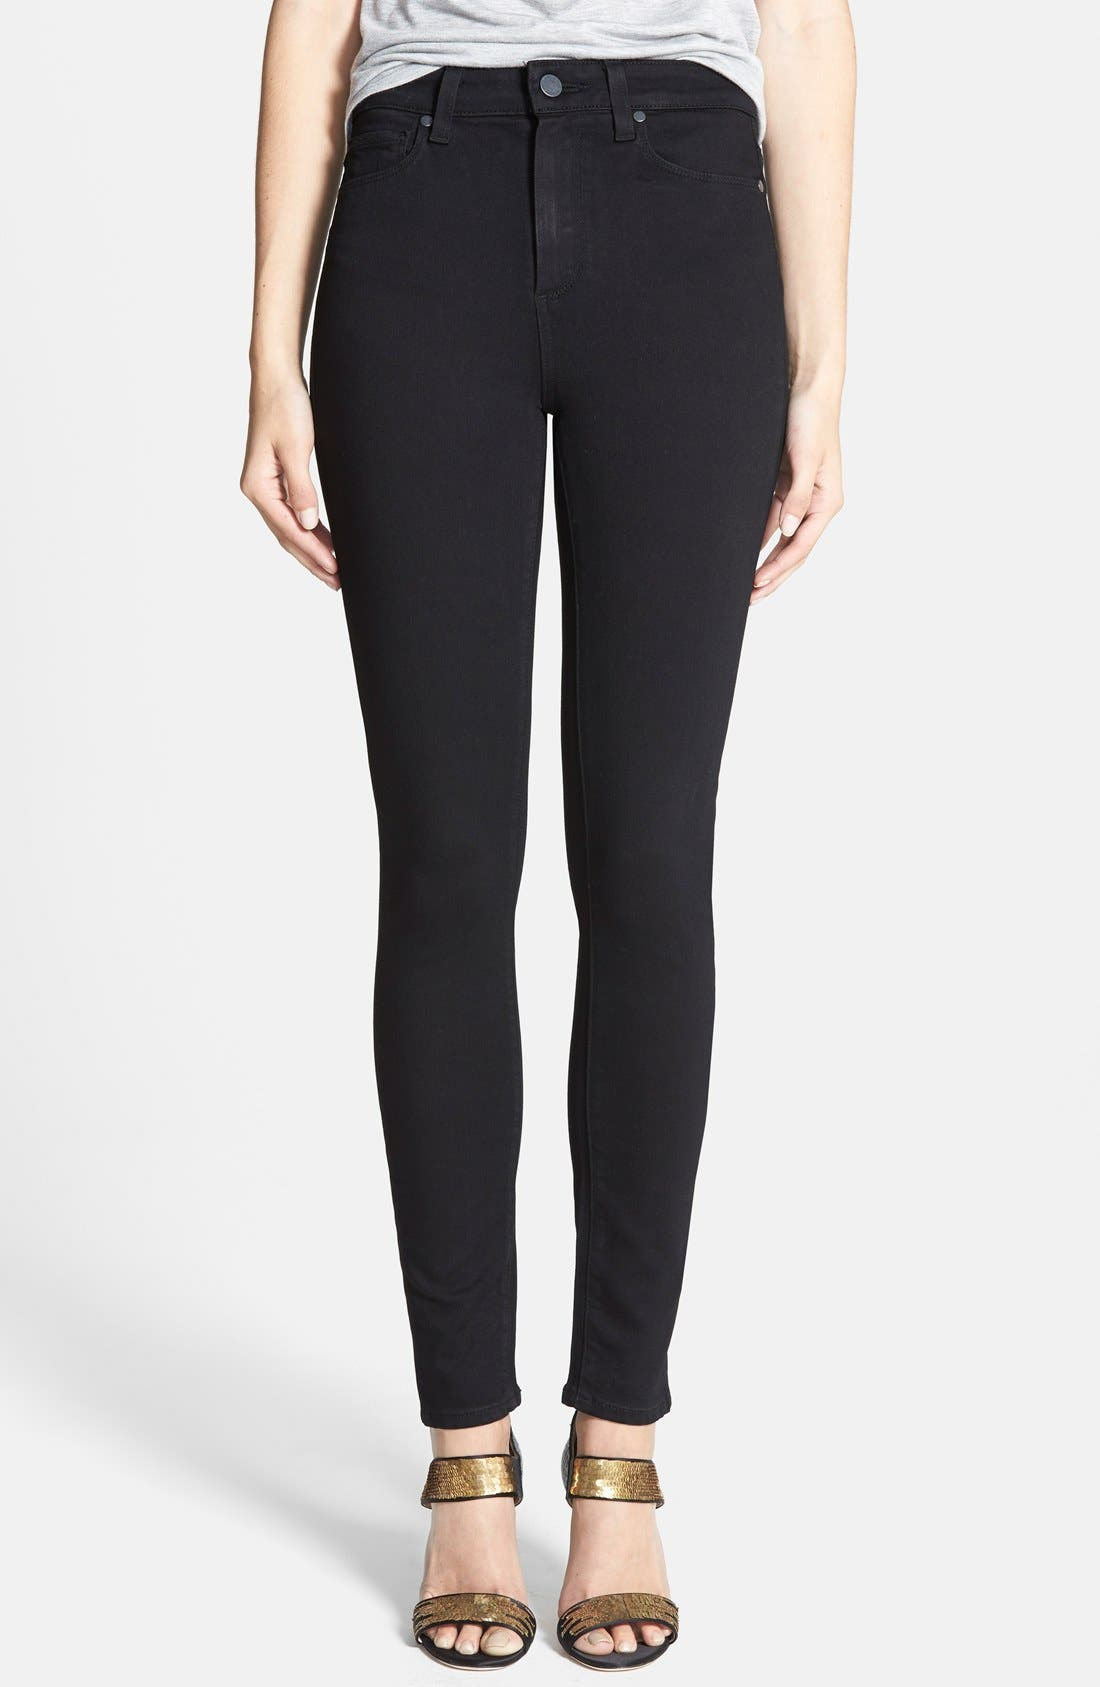 Margo Transcend High Waist Ultra Skinny Jeans,                             Main thumbnail 1, color,                             Black Shadow